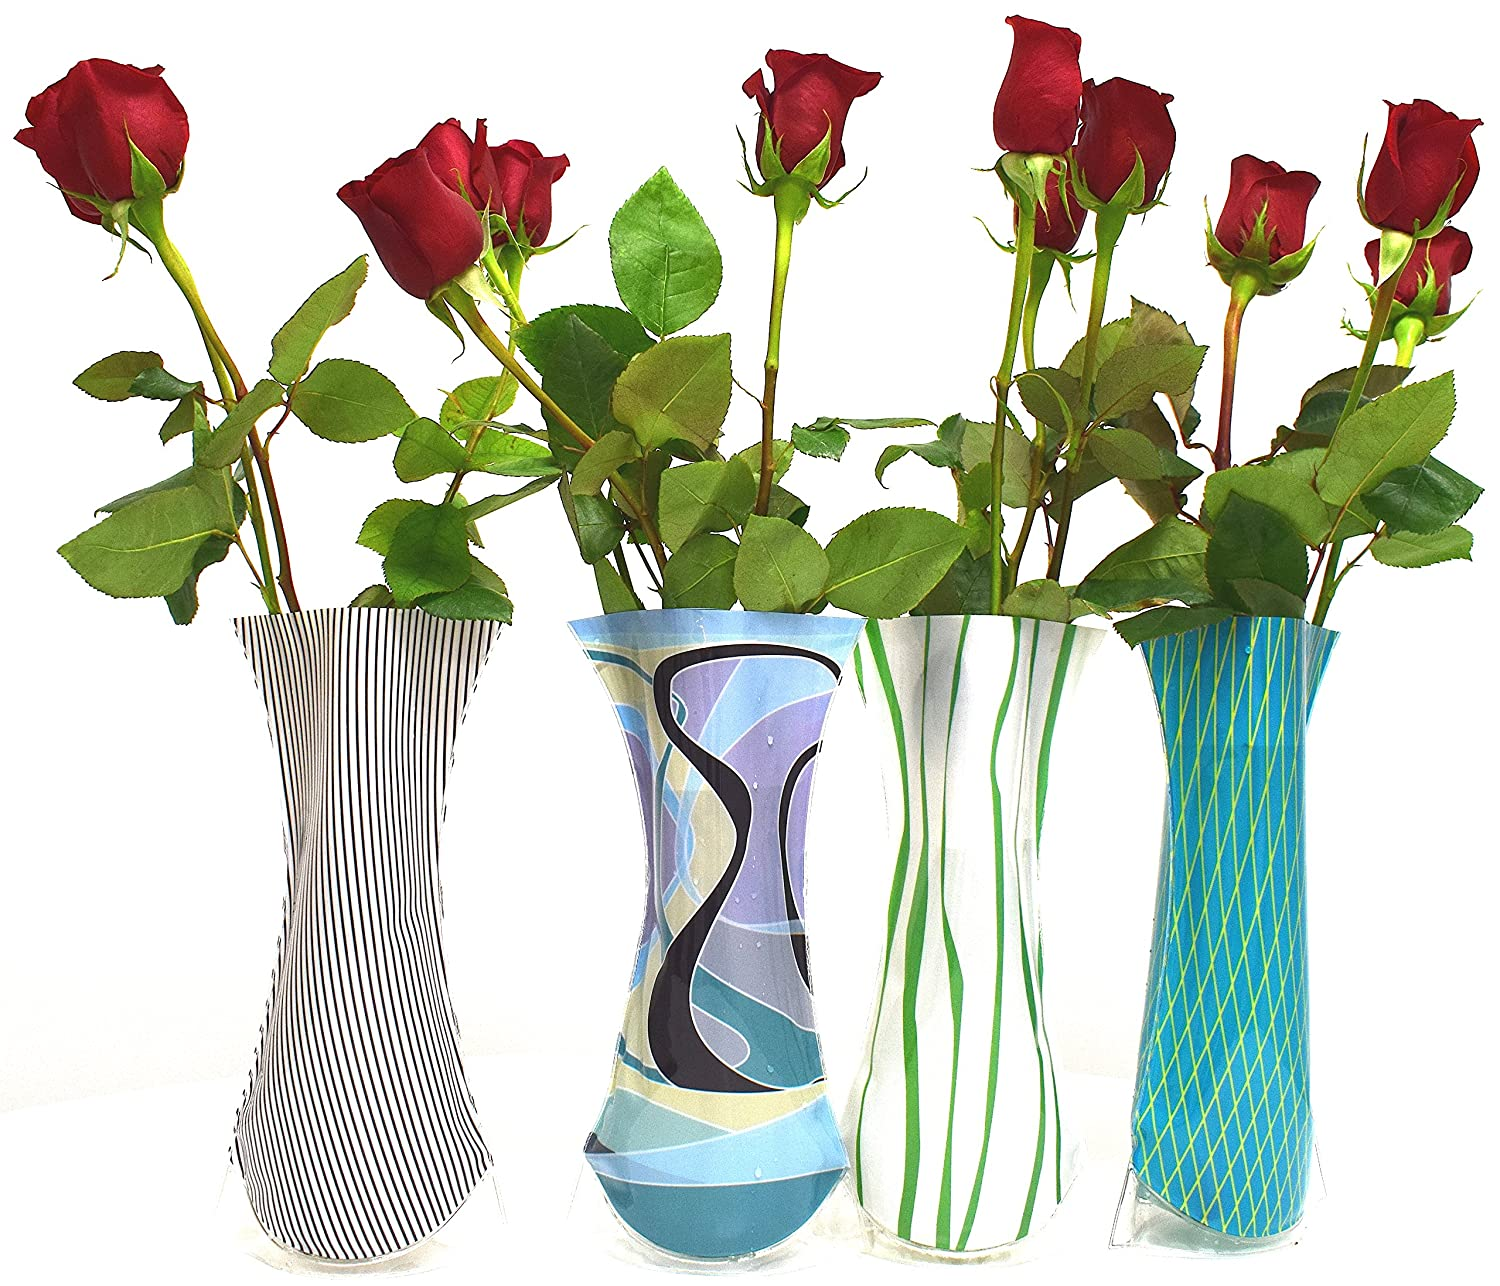 Amazon vazz the vase with class foldable flower vaseincludes amazon vazz the vase with class foldable flower vaseincludes 4 different designsprice reduced for limited timemodern and durable plastic izmirmasajfo